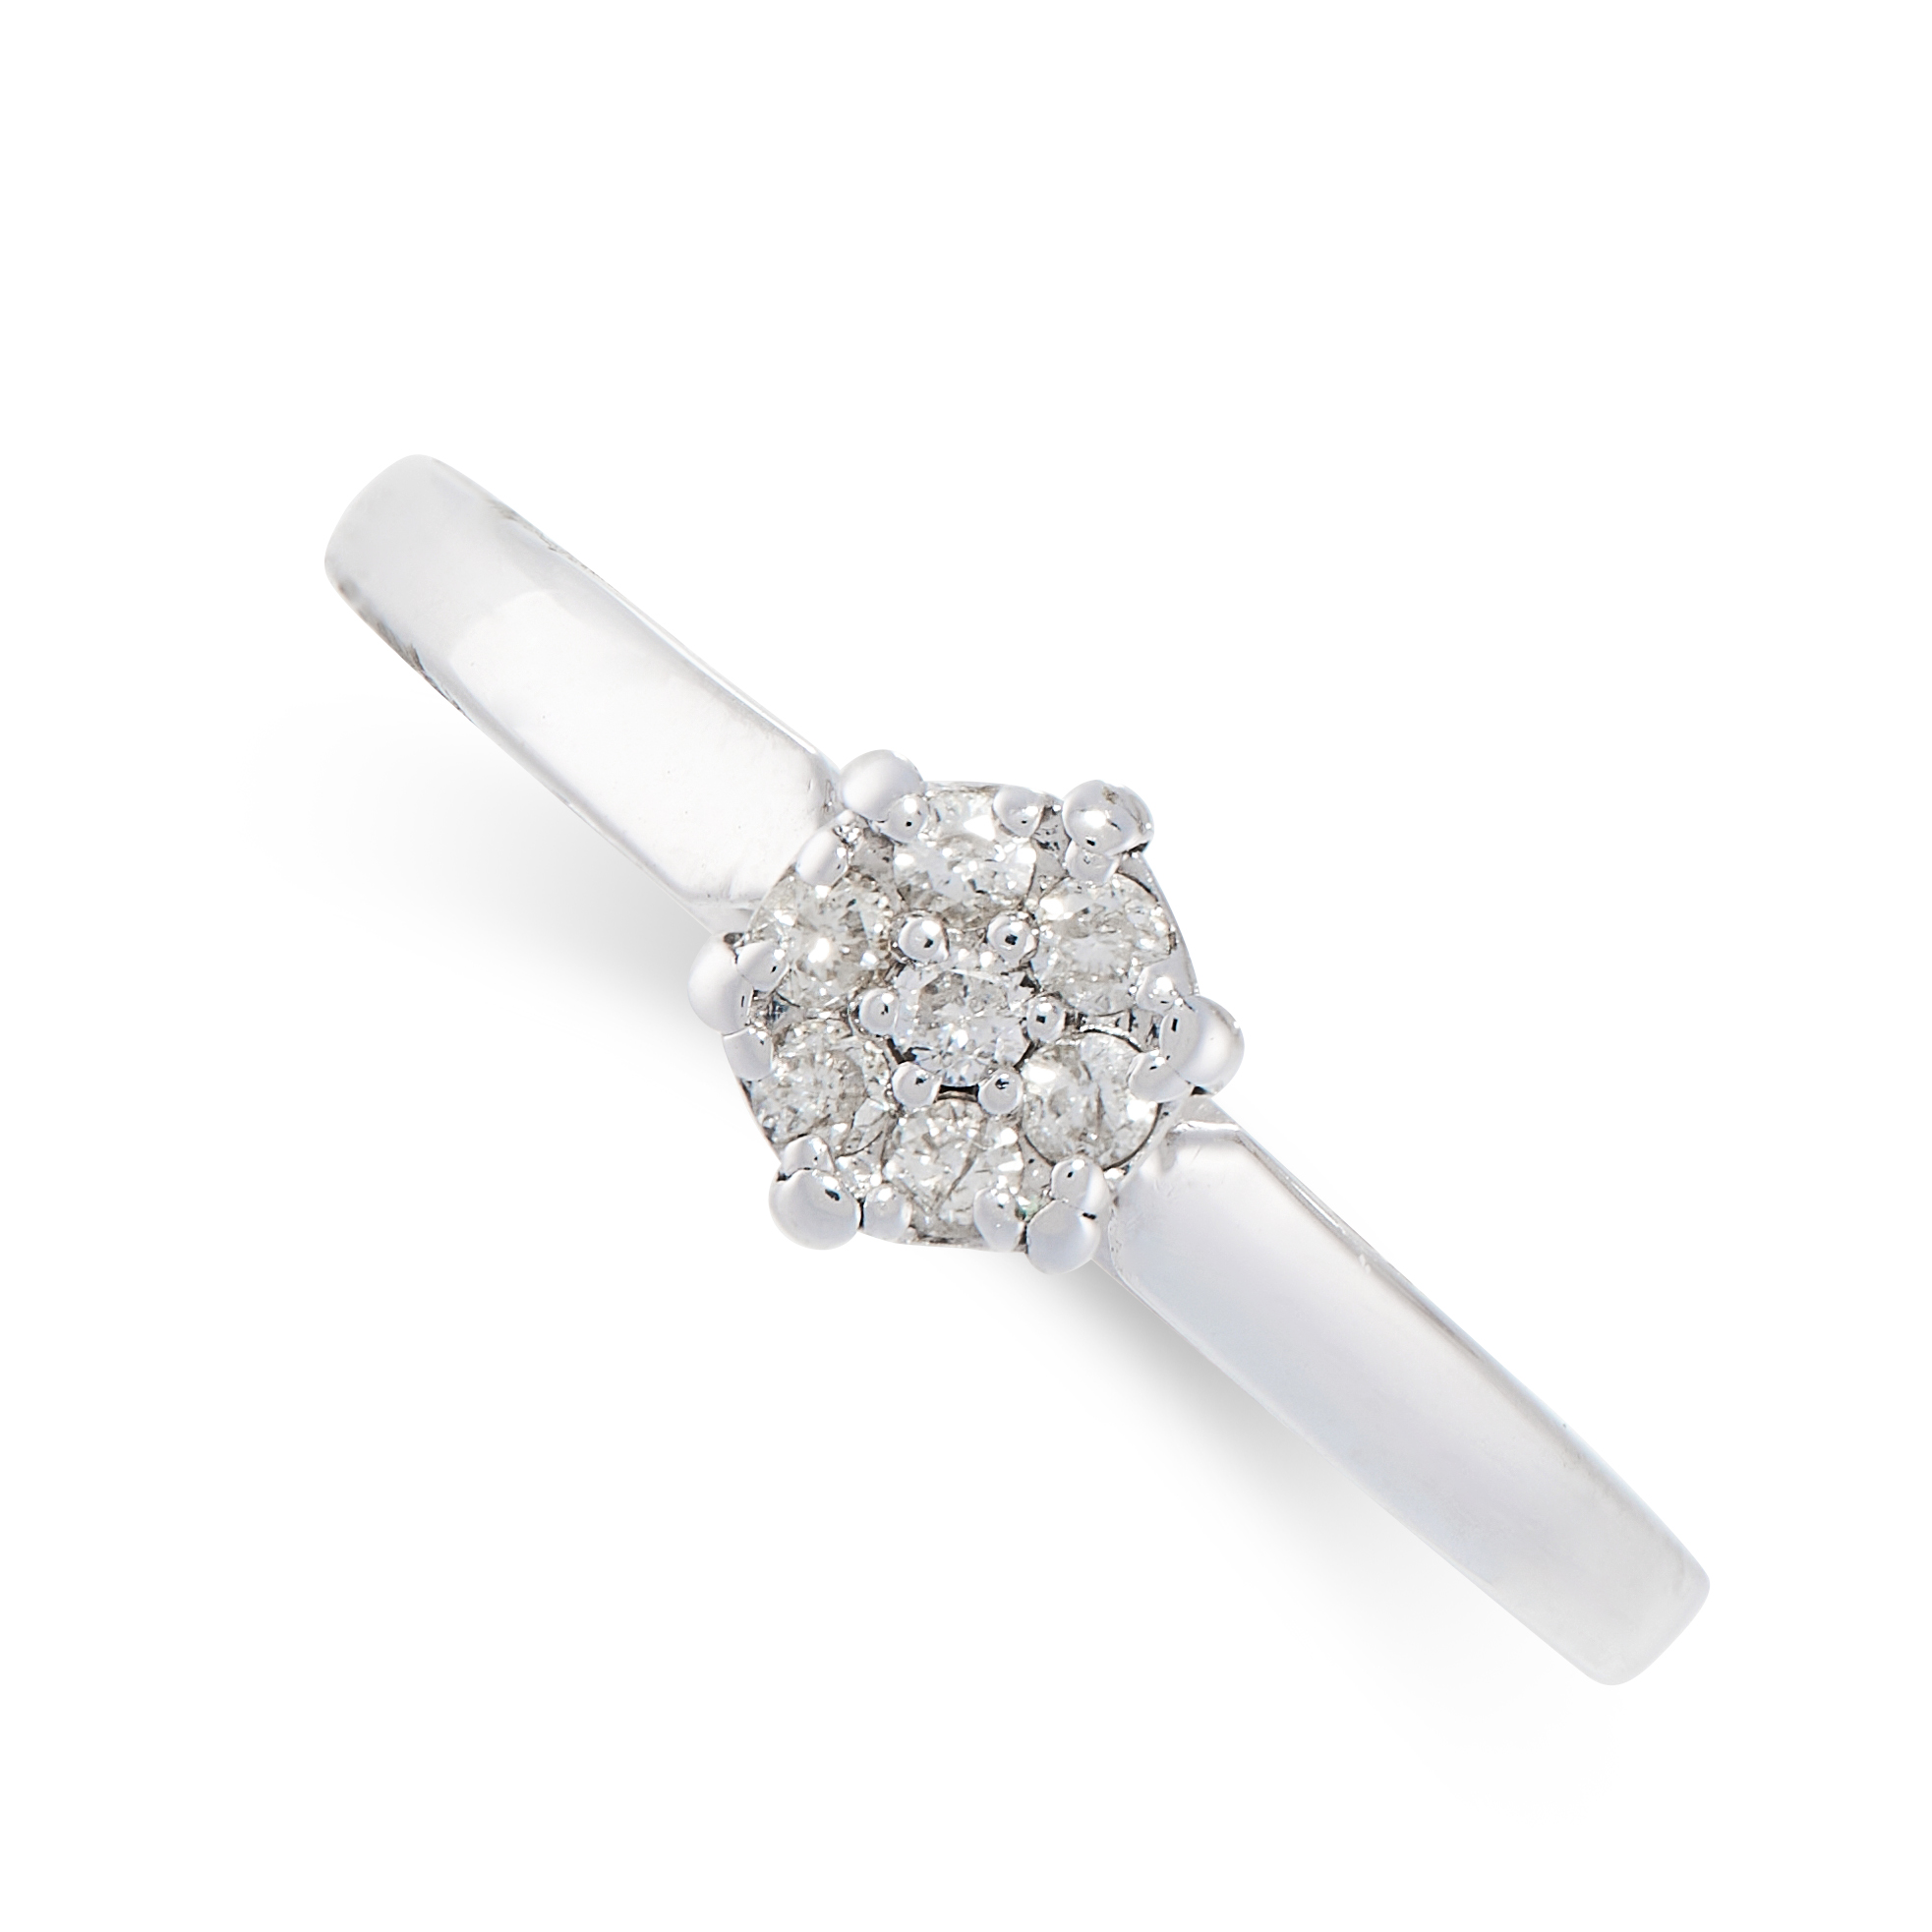 A DIAMOND RING in 18ct white gold, in cluster design, set with seven round cut diamonds, stamped